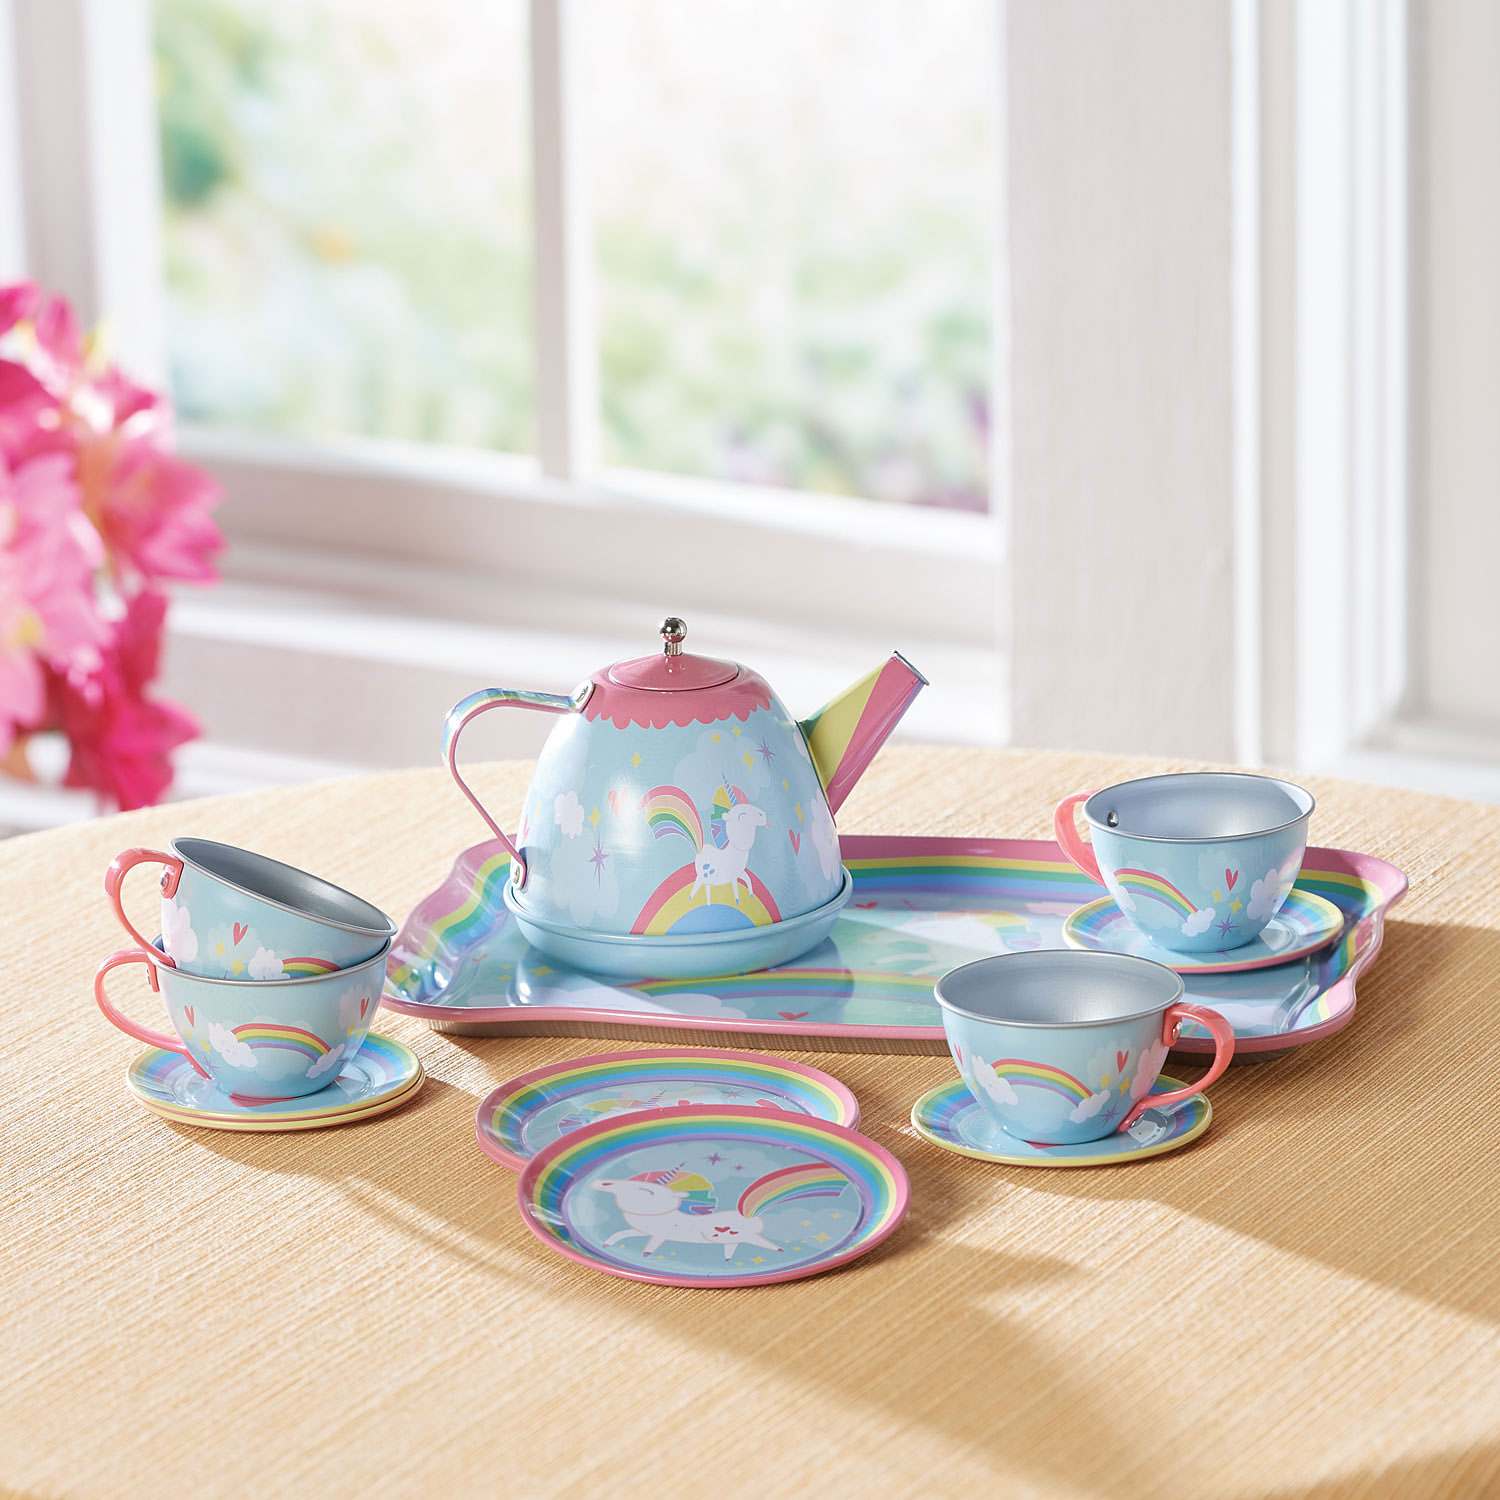 Childs Tea Set Play Toy Plastic Childrens Dishes 25 pieces